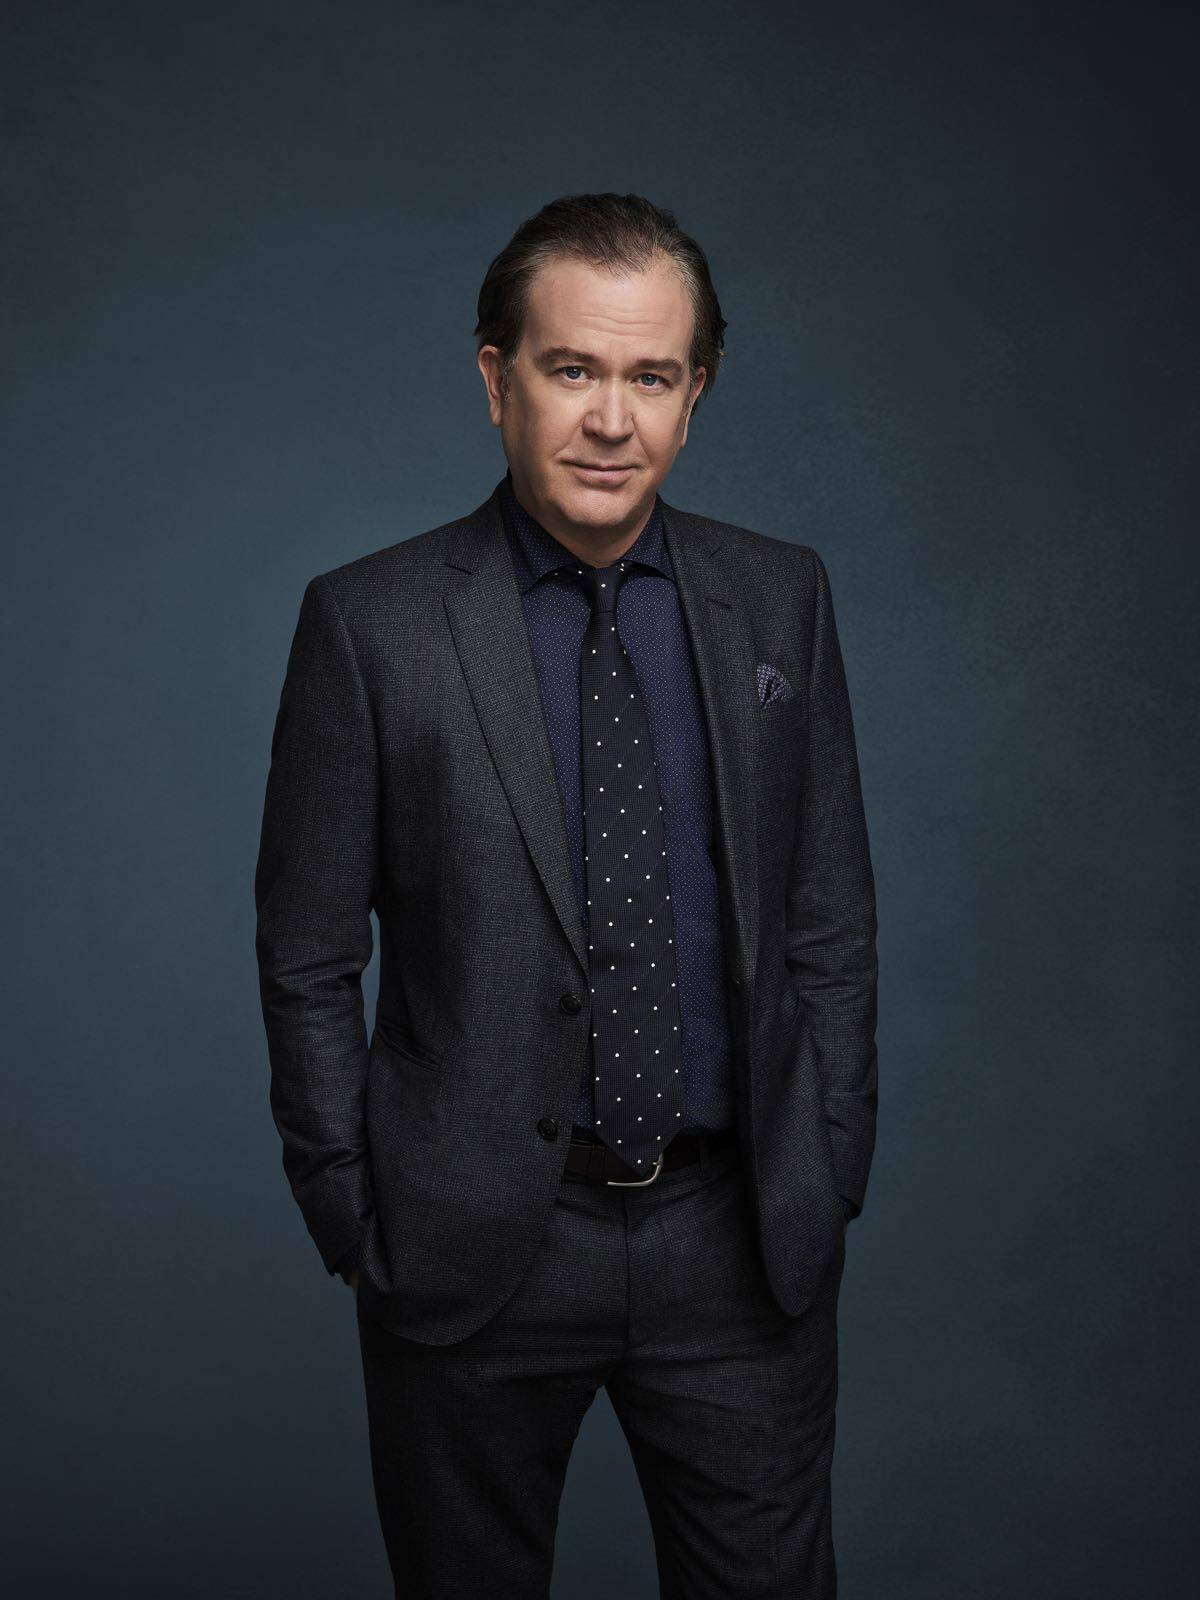 ALMOST FAMILY: Timothy Hutton as Dr. Leon Bechley in Season 1 of ALMOST FAMILY premiering Wednesday, October 2 (9:00-10:00pm PM ET/PT) on FOX. ©2019 Fox Broadcasting Co. All Rights Reserved. CR: Elisabeth Caren/FOX.